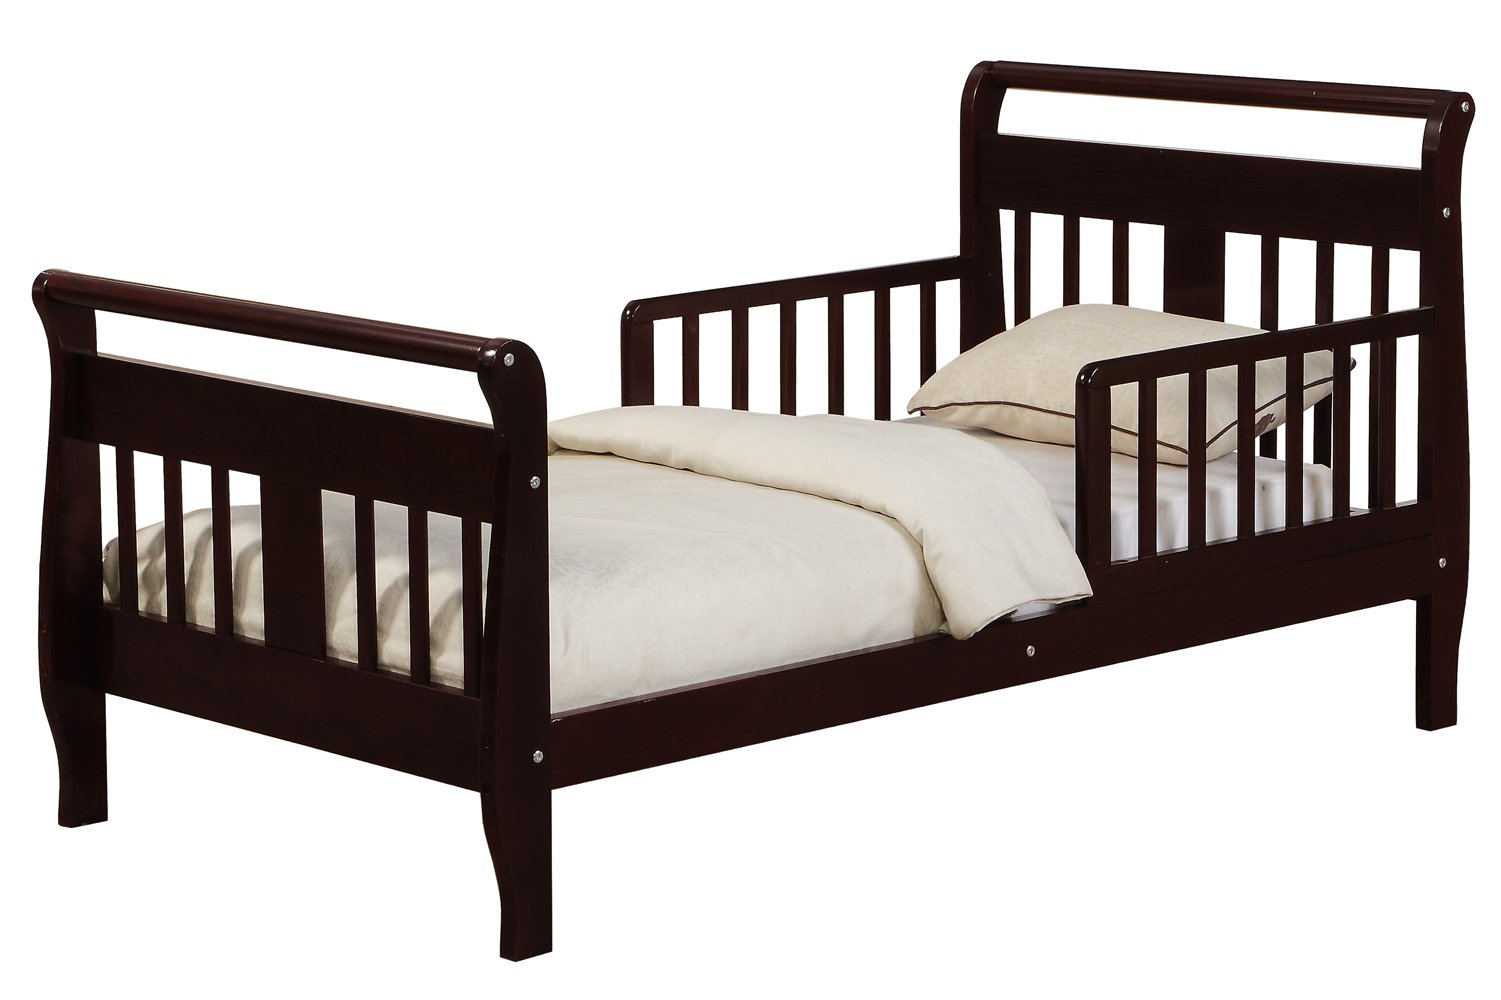 Angel Line Haley Toddler Bed, Espresso Finish by Angel LIne